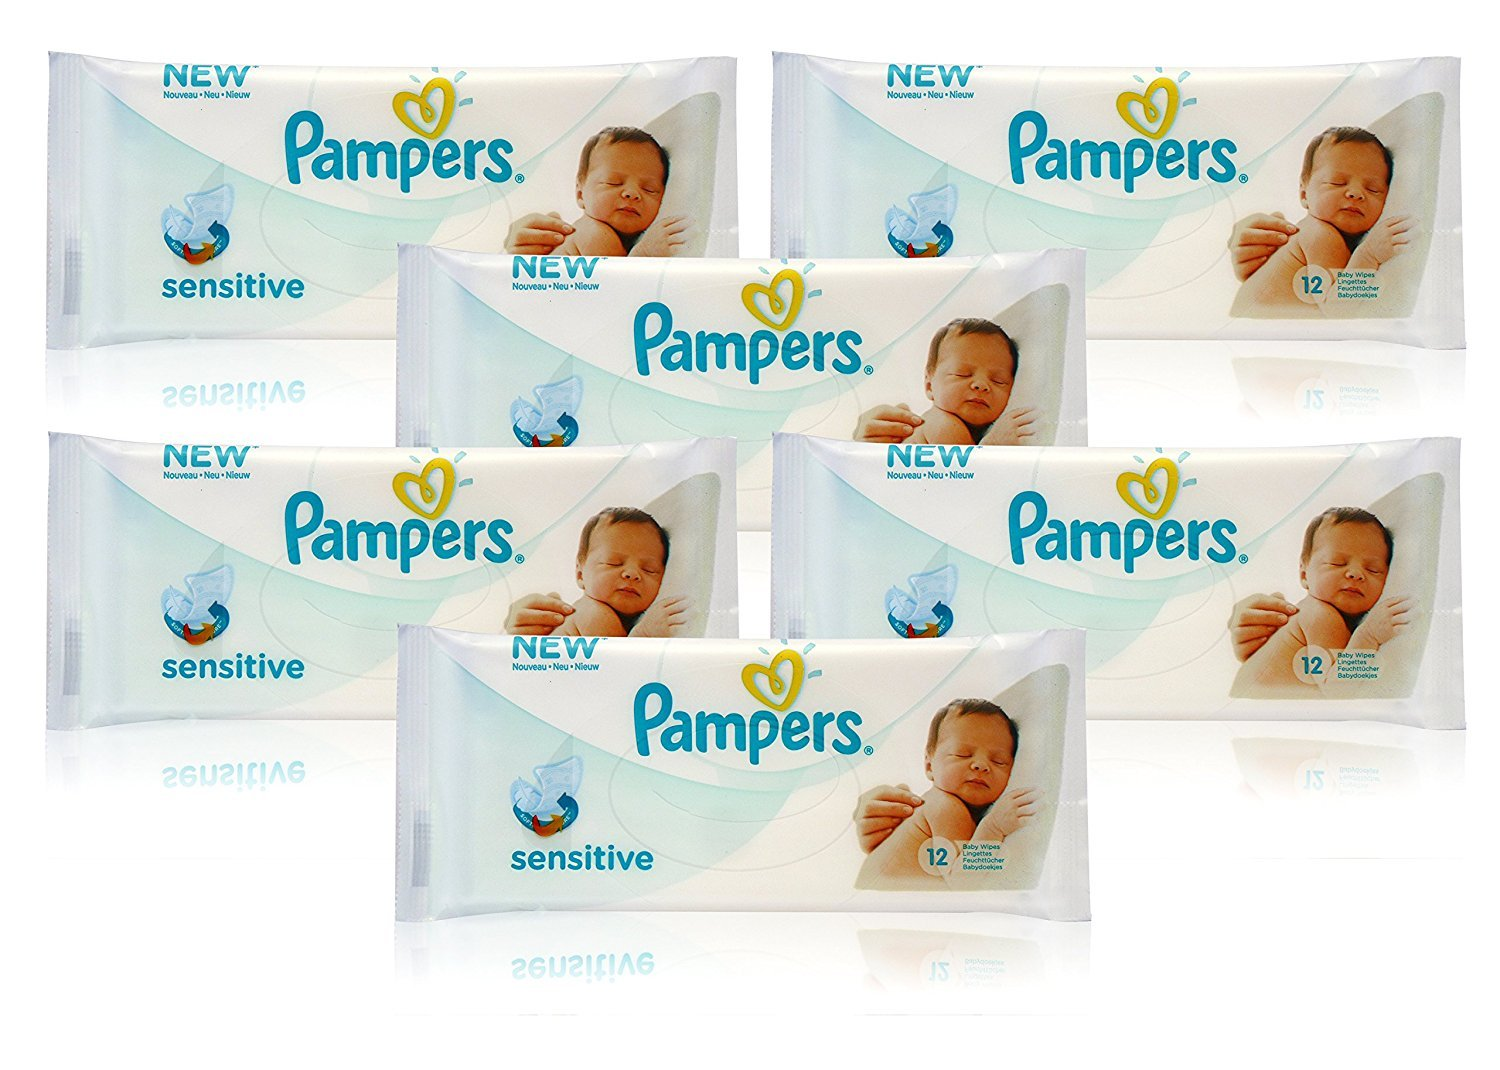 6x Pampers SENSITIVE BABY WIPES Handy Travel Size Convenience 12 WIPES PER PACK